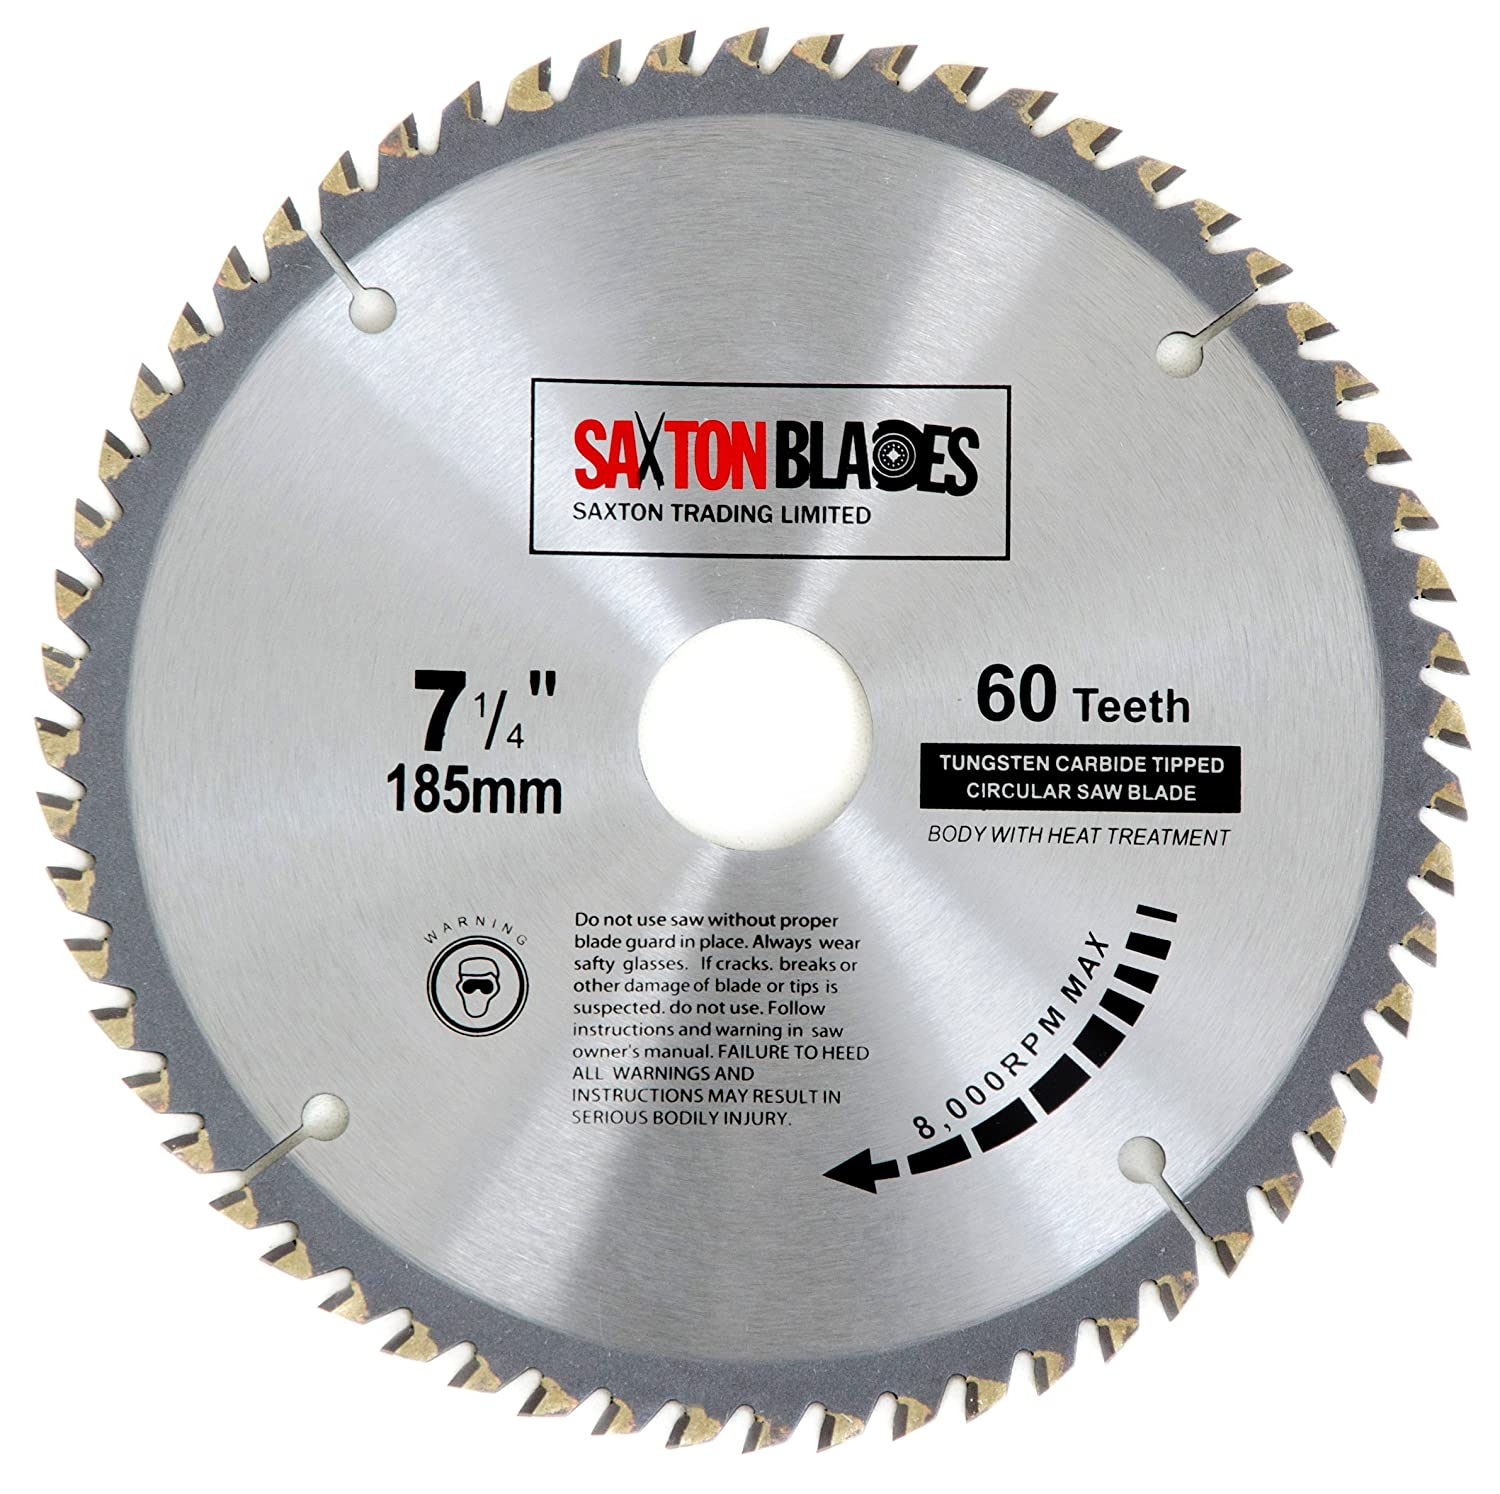 Tct18560t saxton tct circular wood saw blade 185mm x 30mm x bore x tct18560t saxton tct circular wood saw blade 185mm x 30mm x bore x 60t for bosch makita dewalt fits 190mm saws amazon diy tools keyboard keysfo